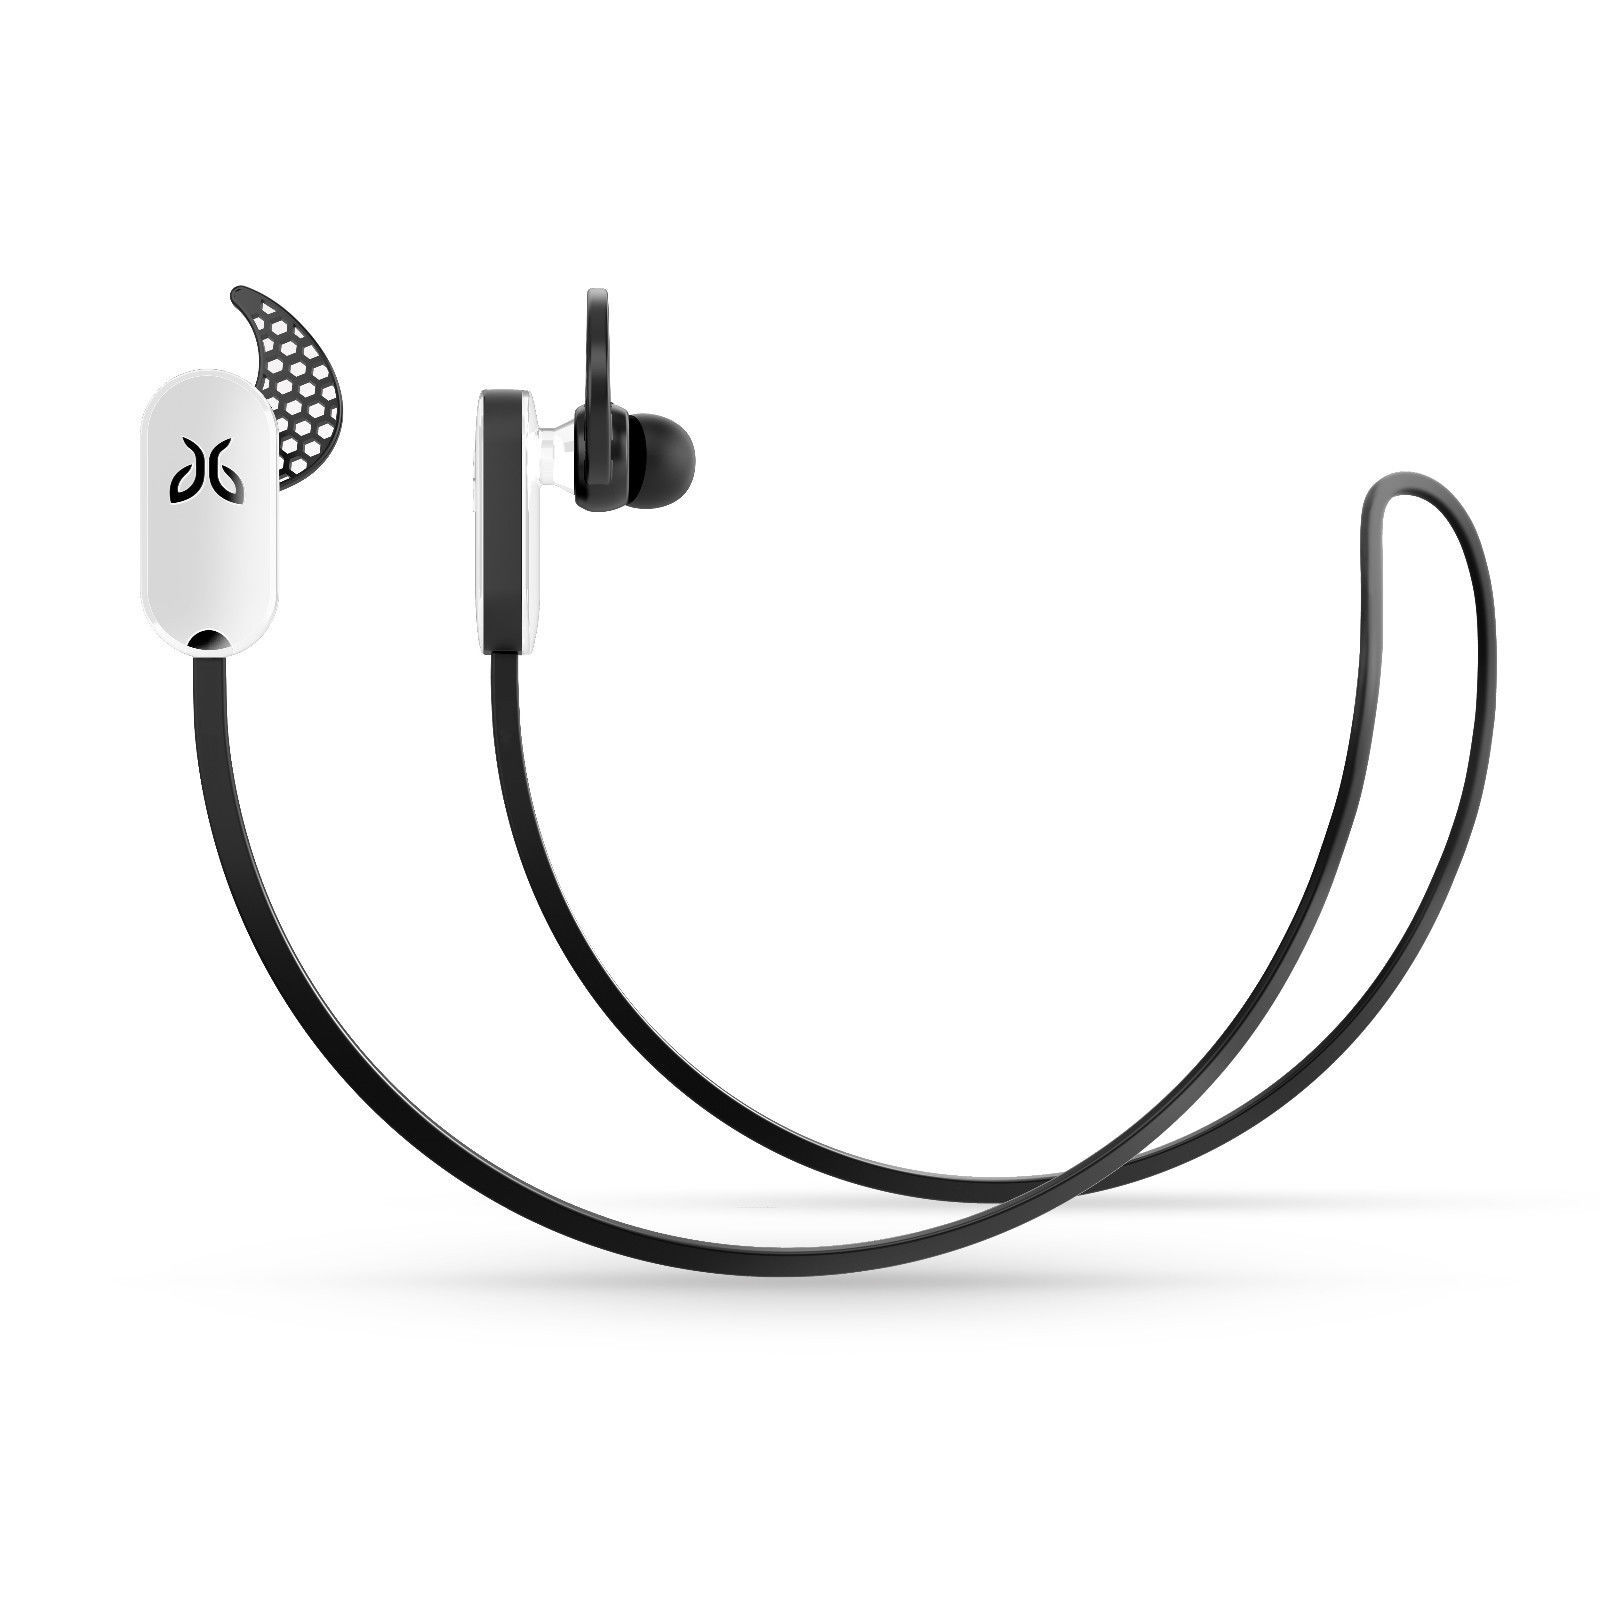 Purple Set Replacement Ear-tips Earbuds for Jaybird Freedom and Freedom Sprint